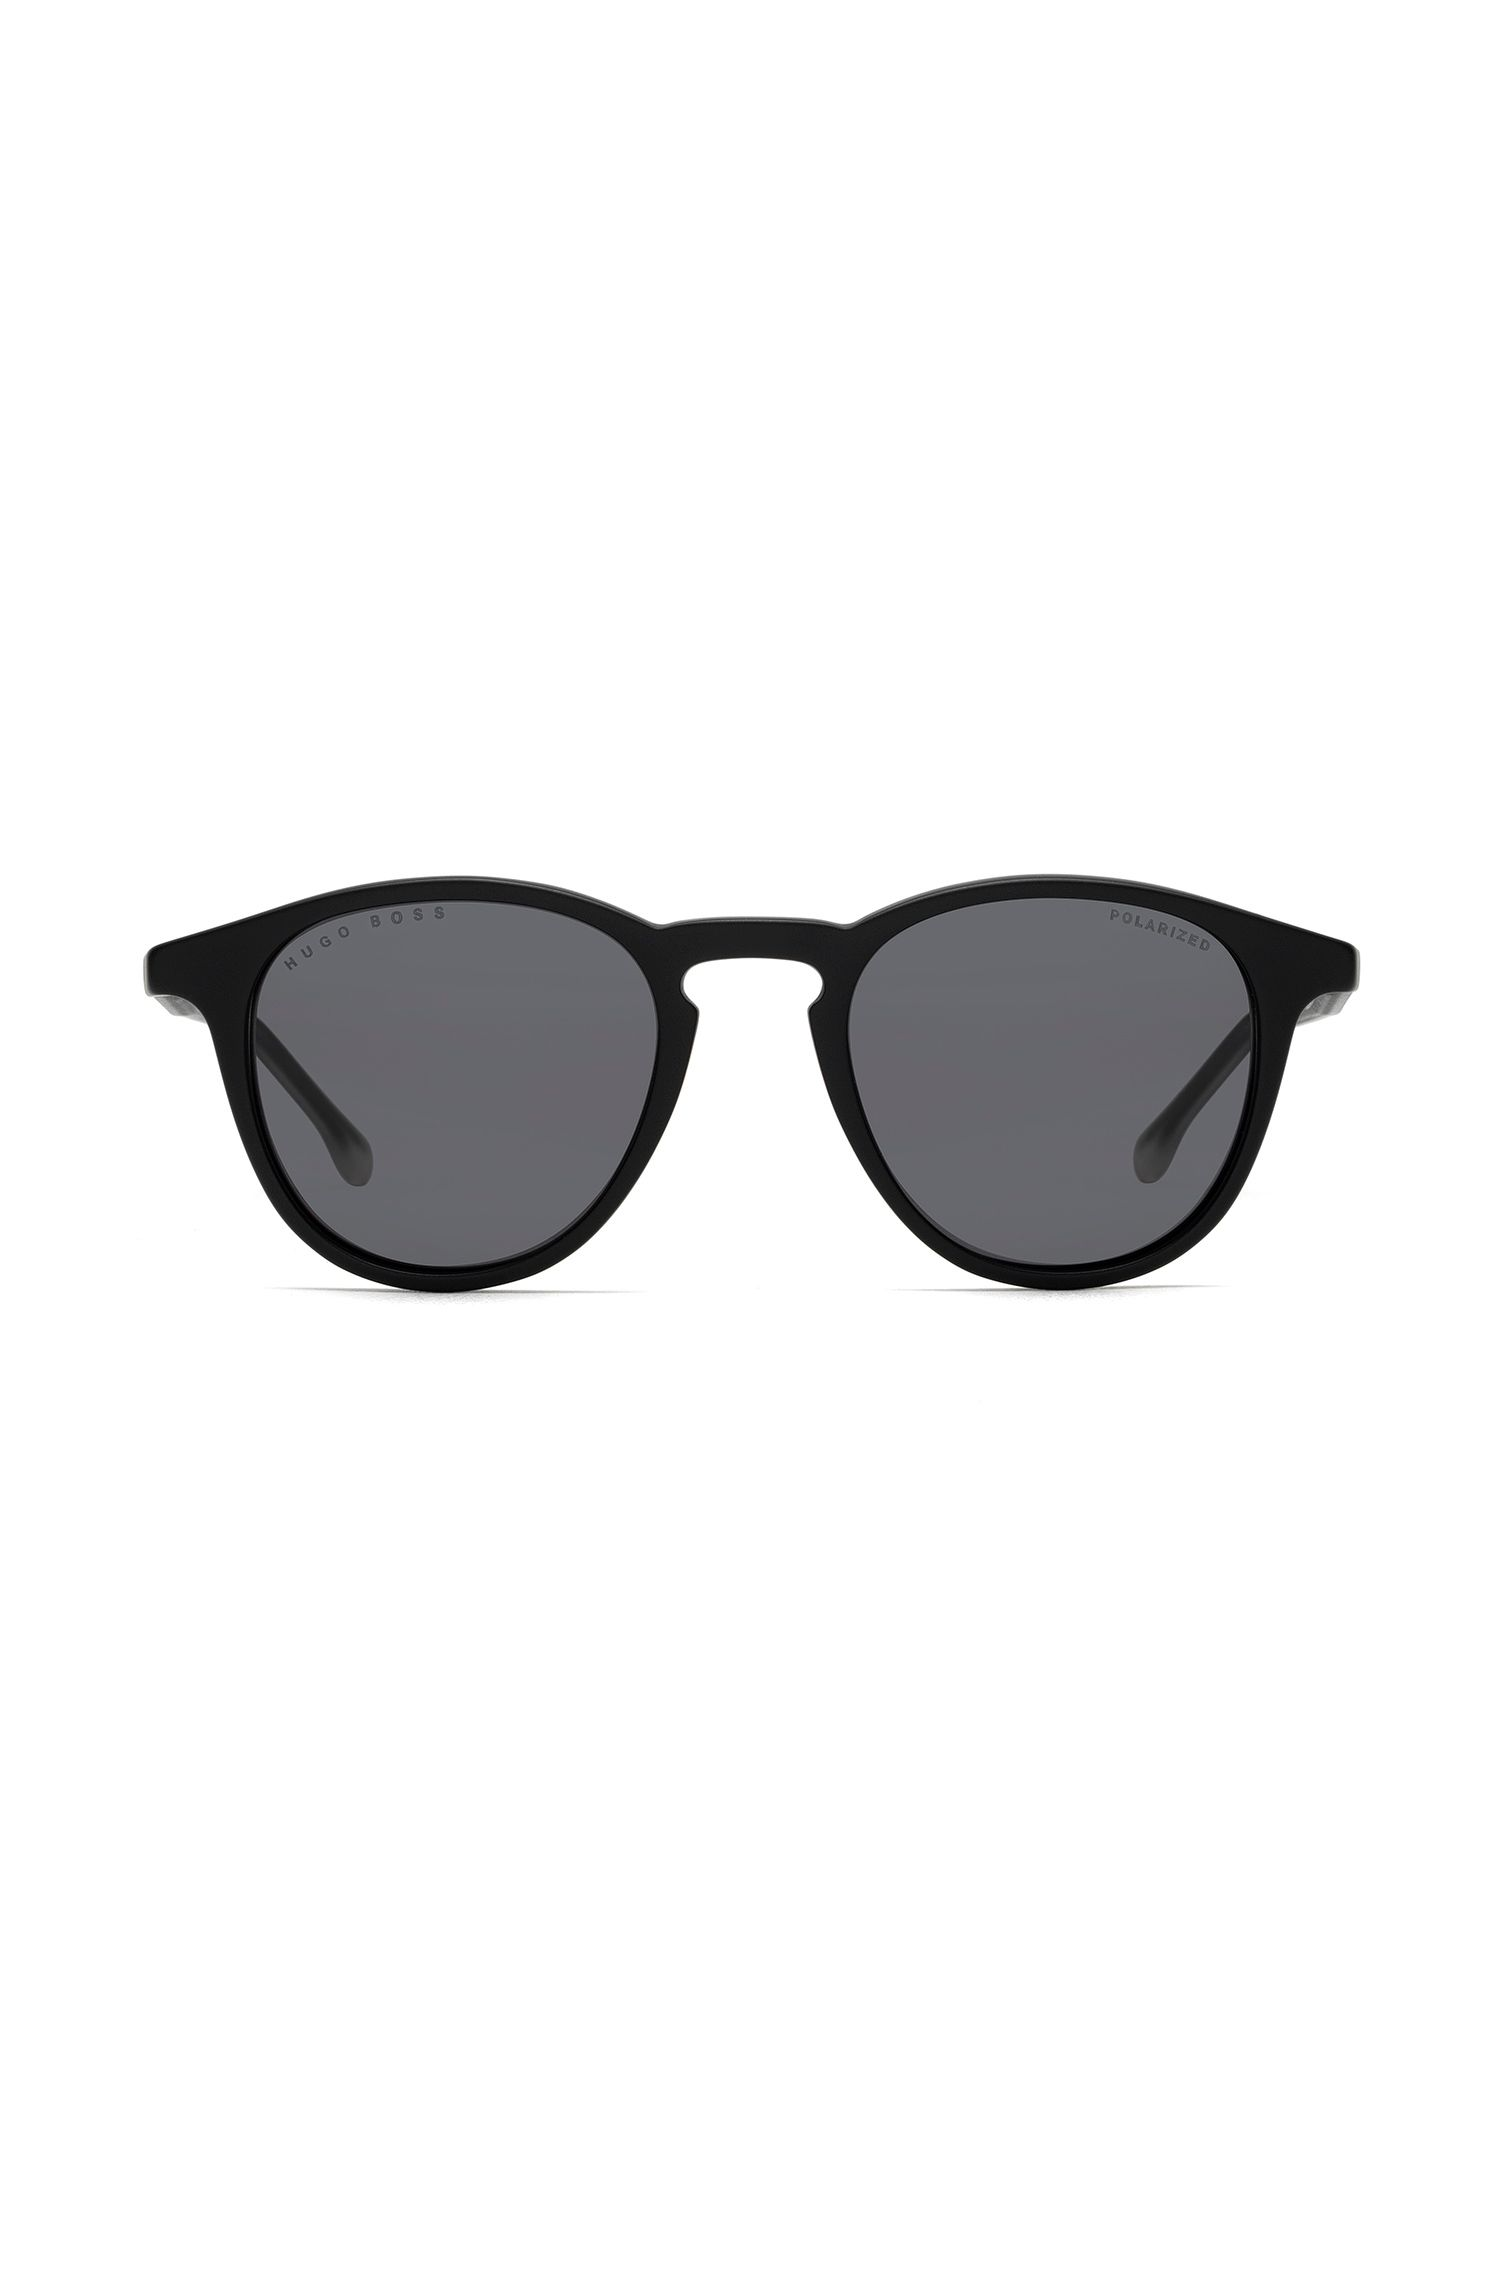 Optyl sunglasses with polarised lenses, Black